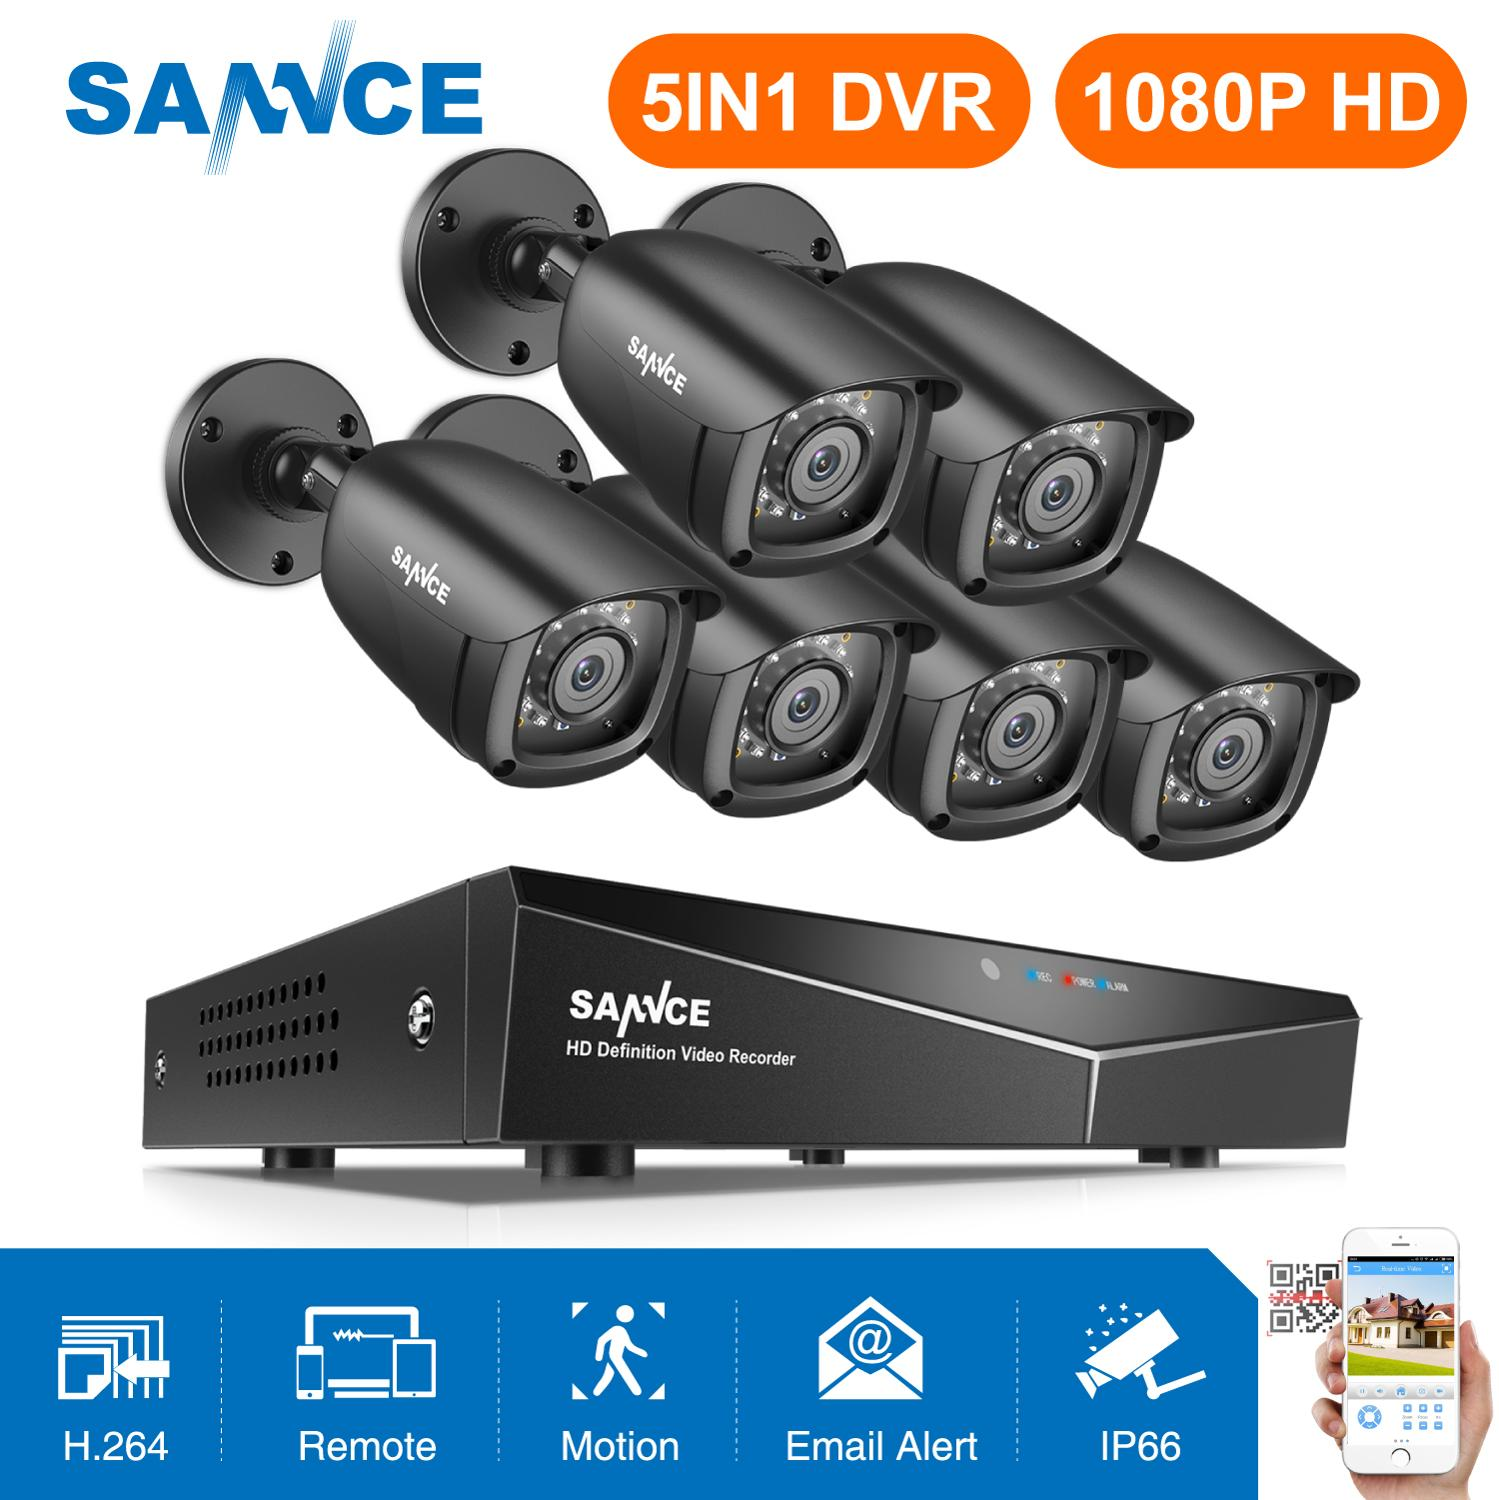 SANNCE 8CH 1080P Video Security System 5IN1 DVR With 6PCS 1080P TVI Smart IR Outdoor Weatherproof CCTV Surveillance Cameras Kit